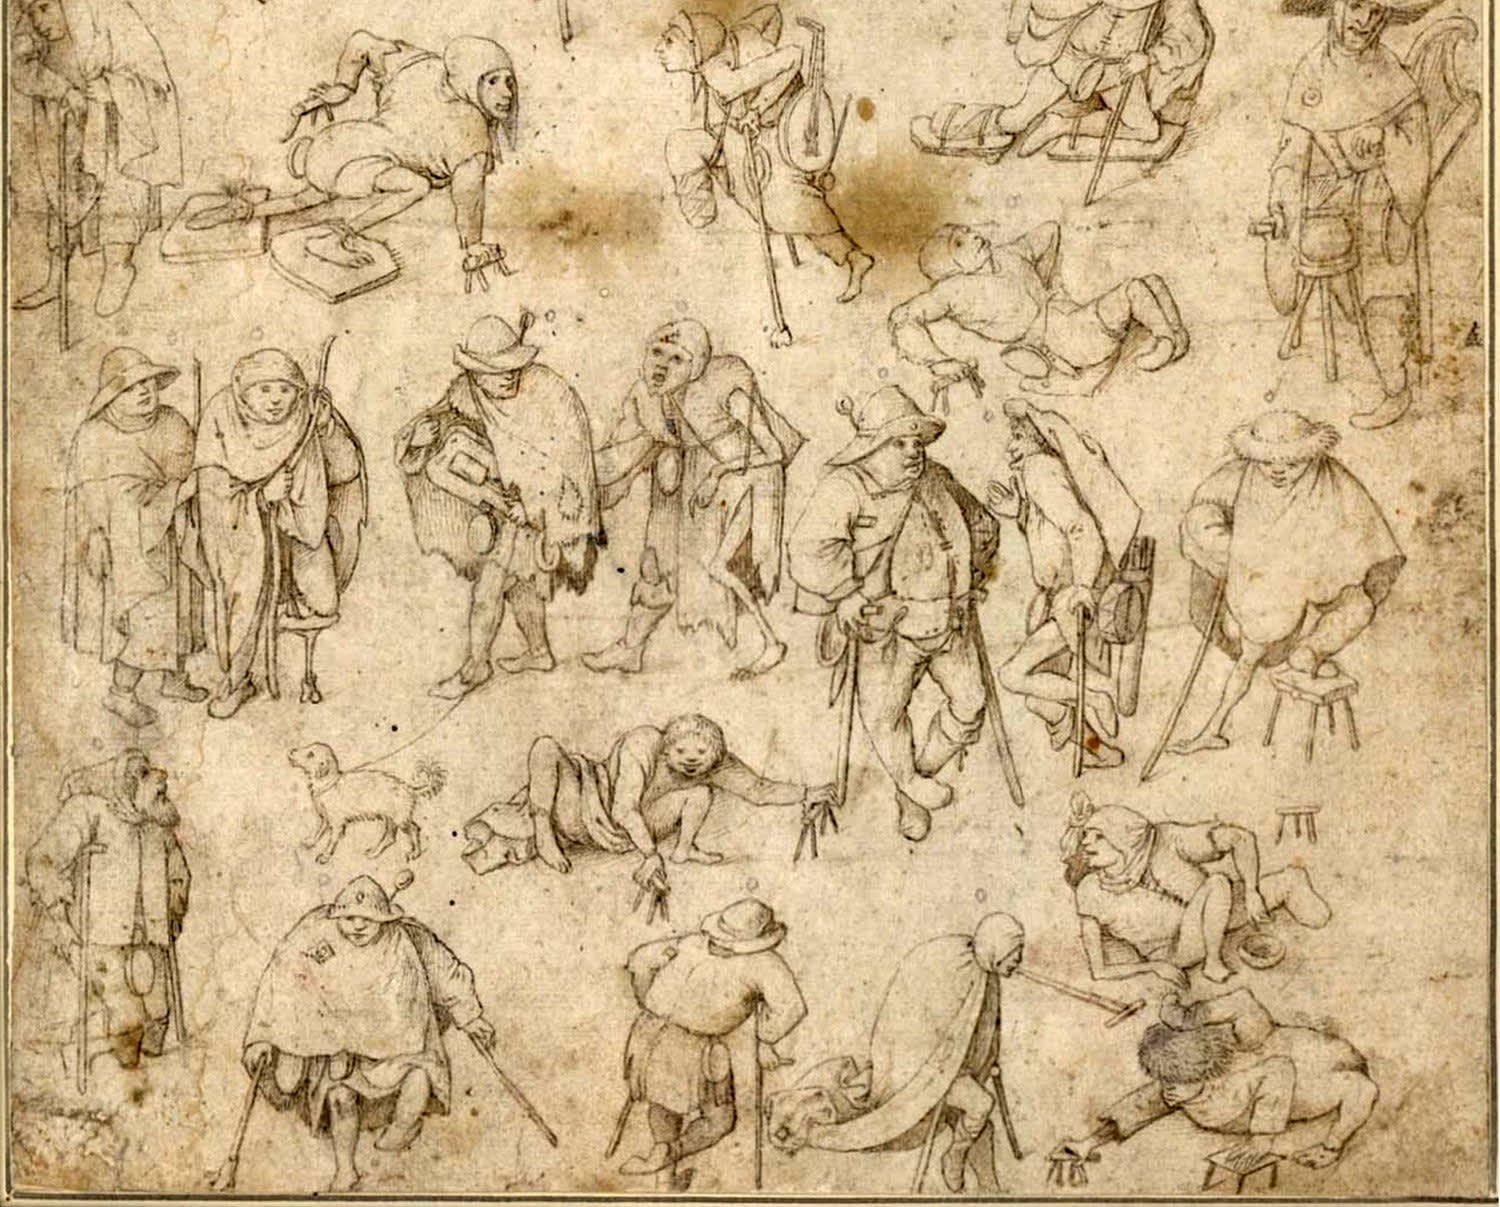 This image is showing Beggars and Cripples drawing by Hieronymus Bosch